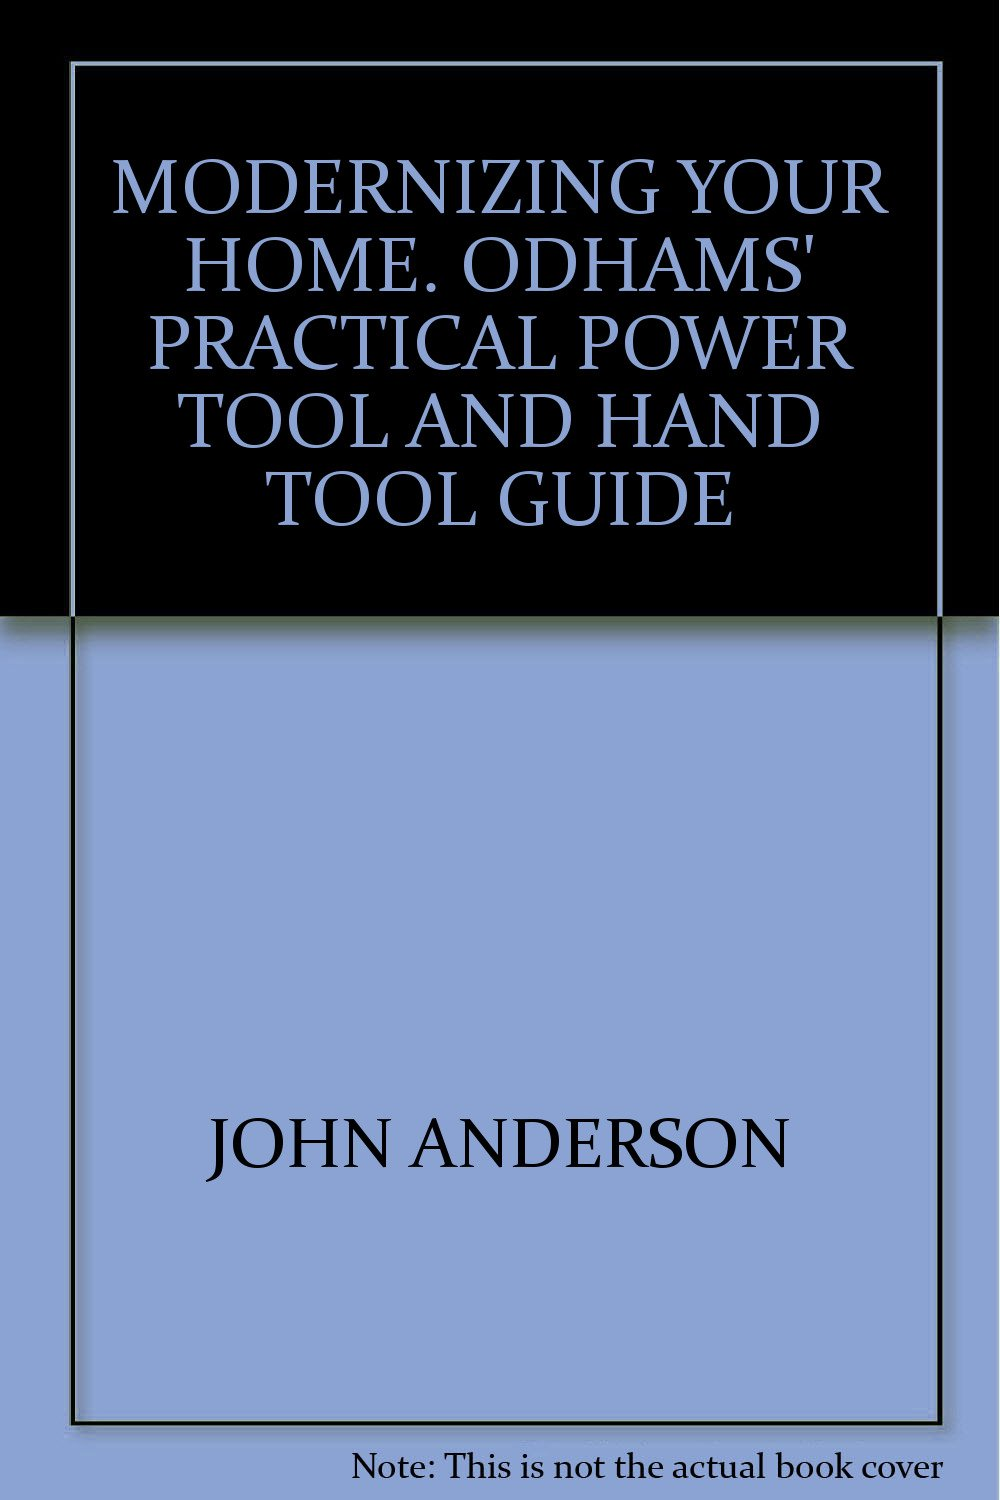 Modernizing your home;: Odhams' practical power tool and hand tool guide,